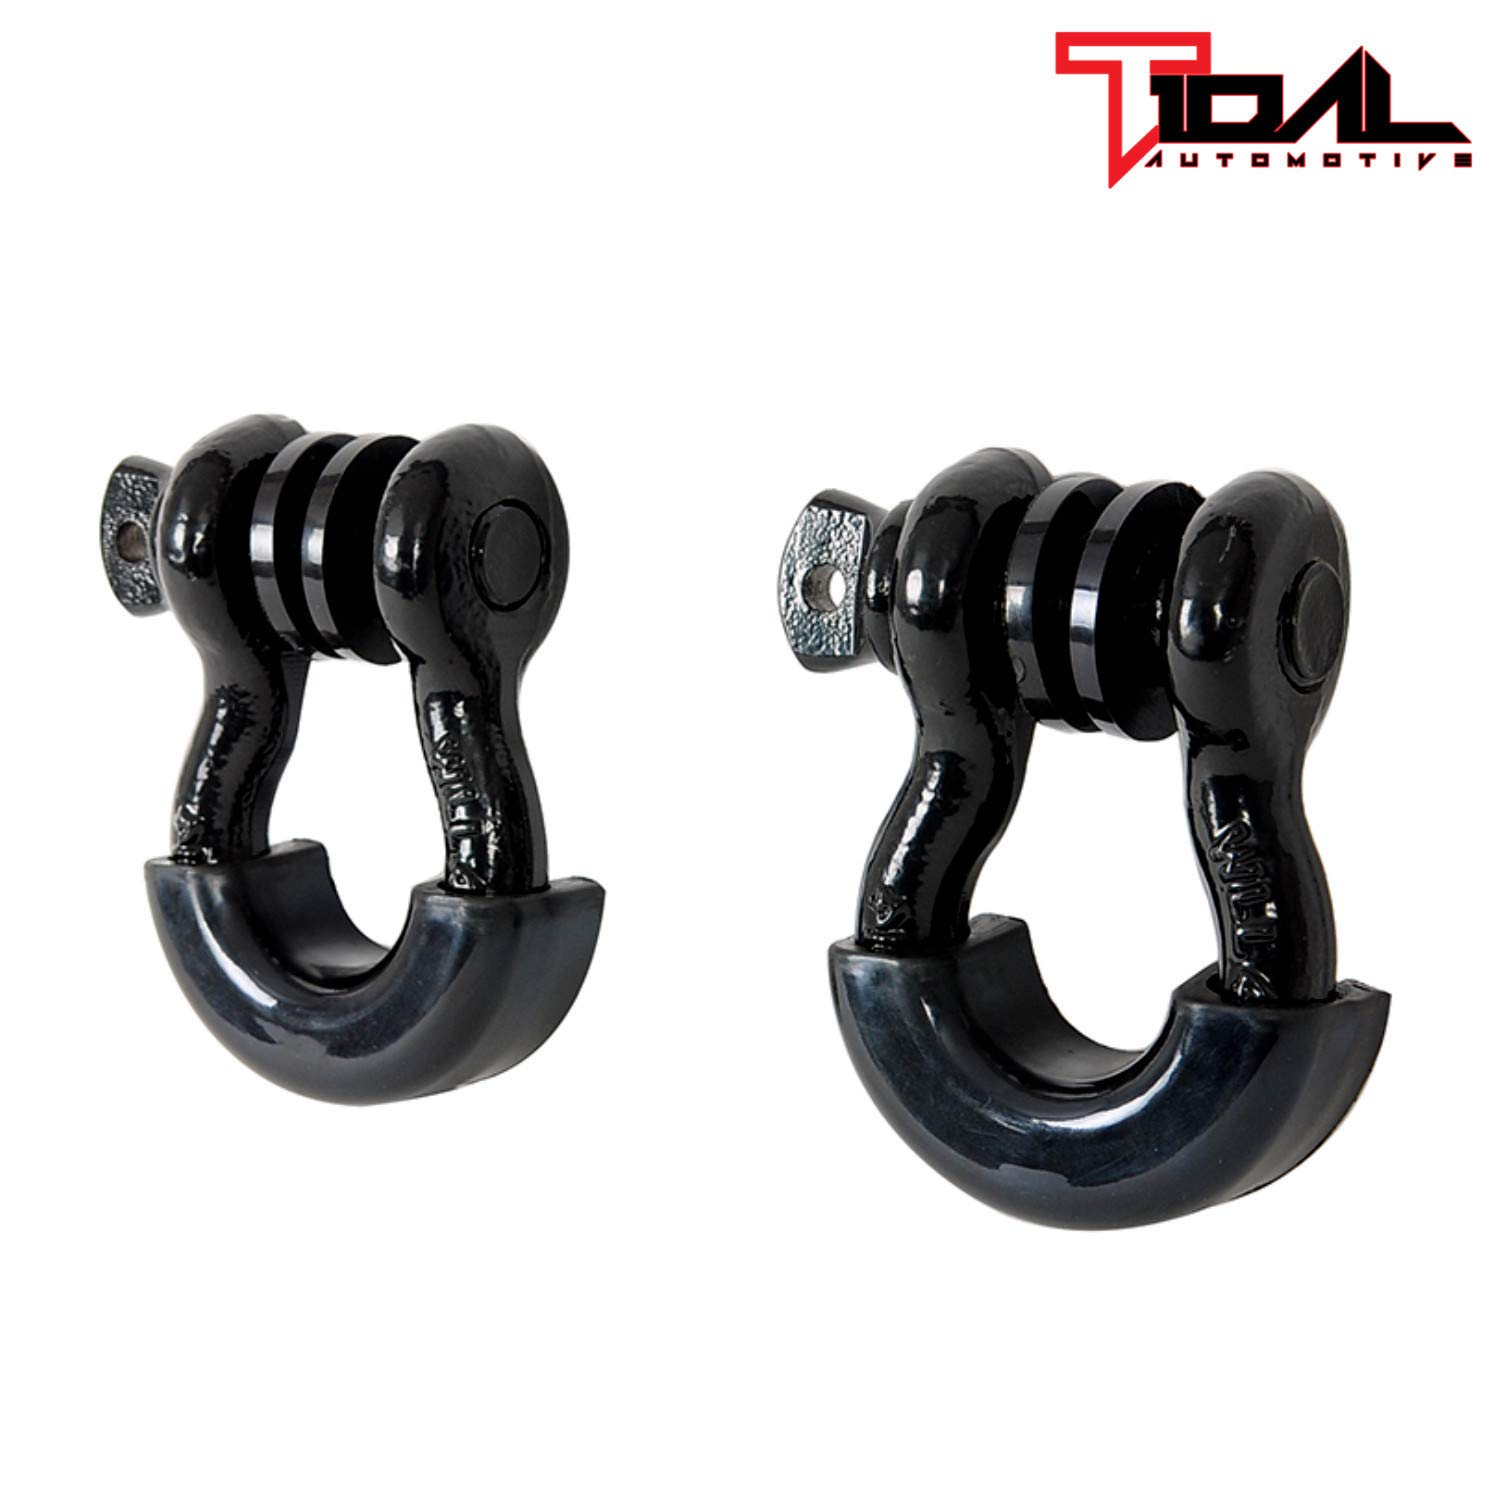 EAG 3//4 Black D-Ring Shackles 4.75 Ton Capacity with 7//8 Diameter Pin and Black Isolator /& Washer Kits 1 Pair